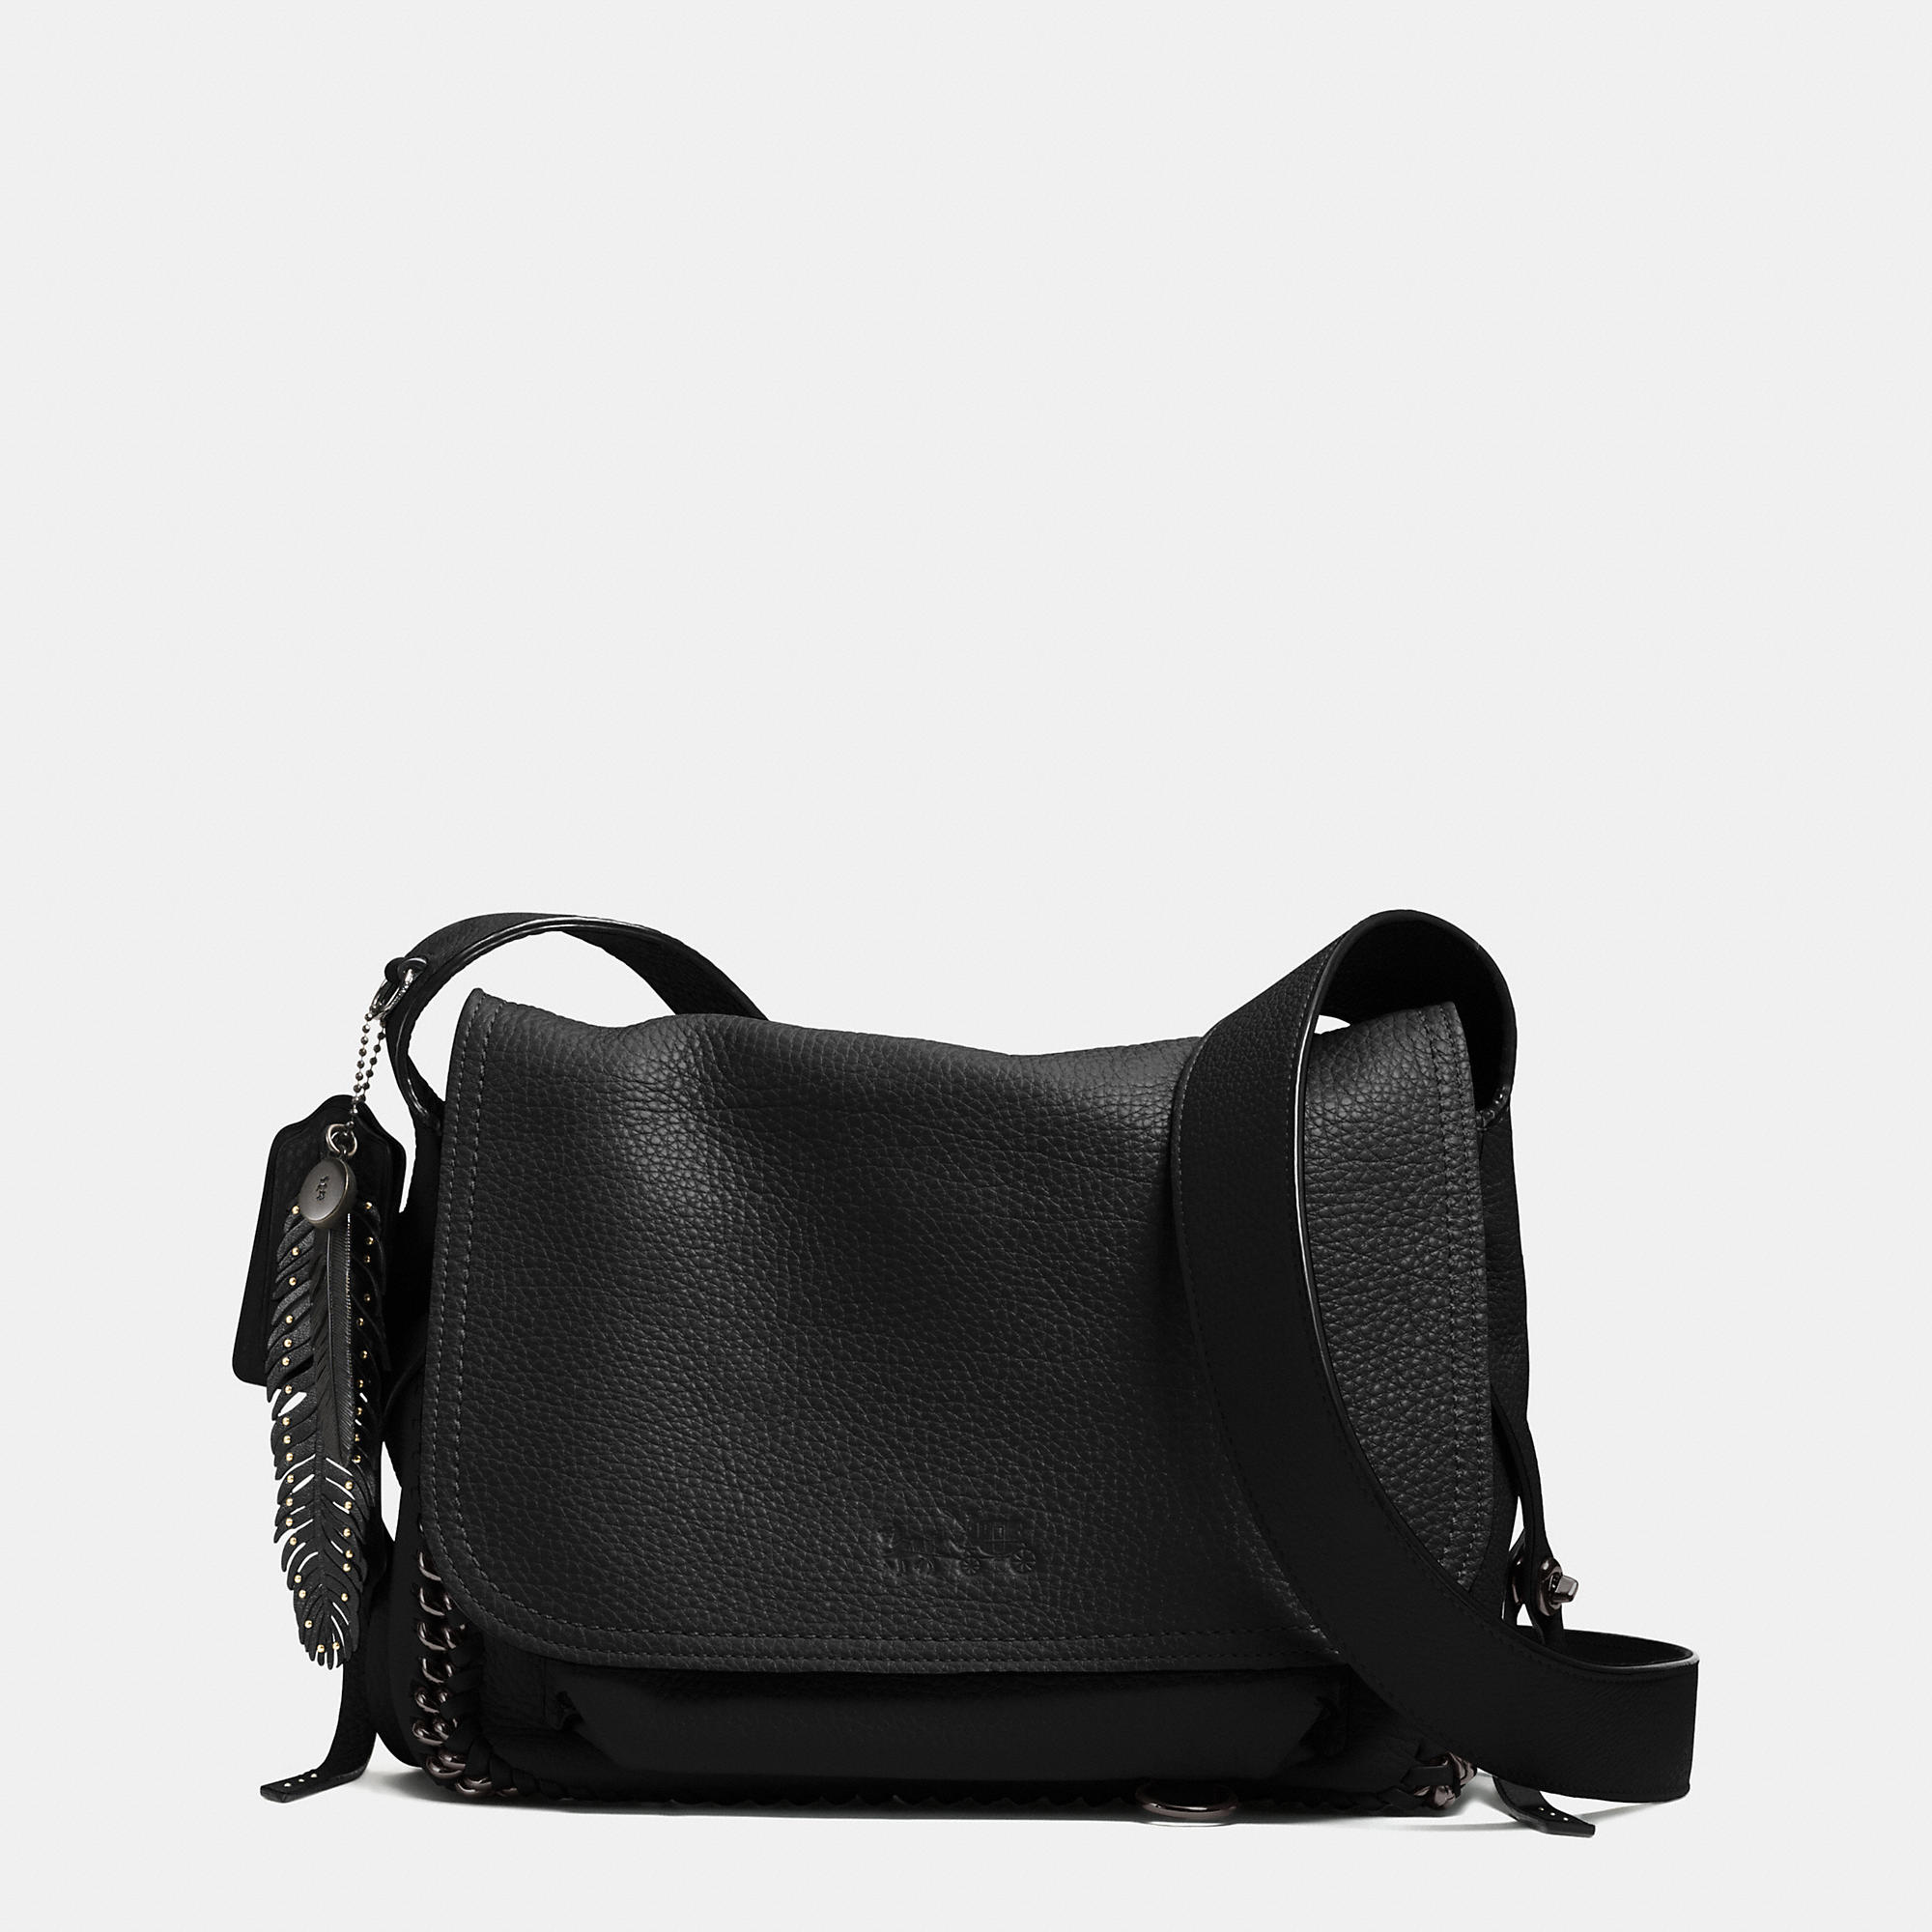 437c29bf0677 COACH Official Site Official page